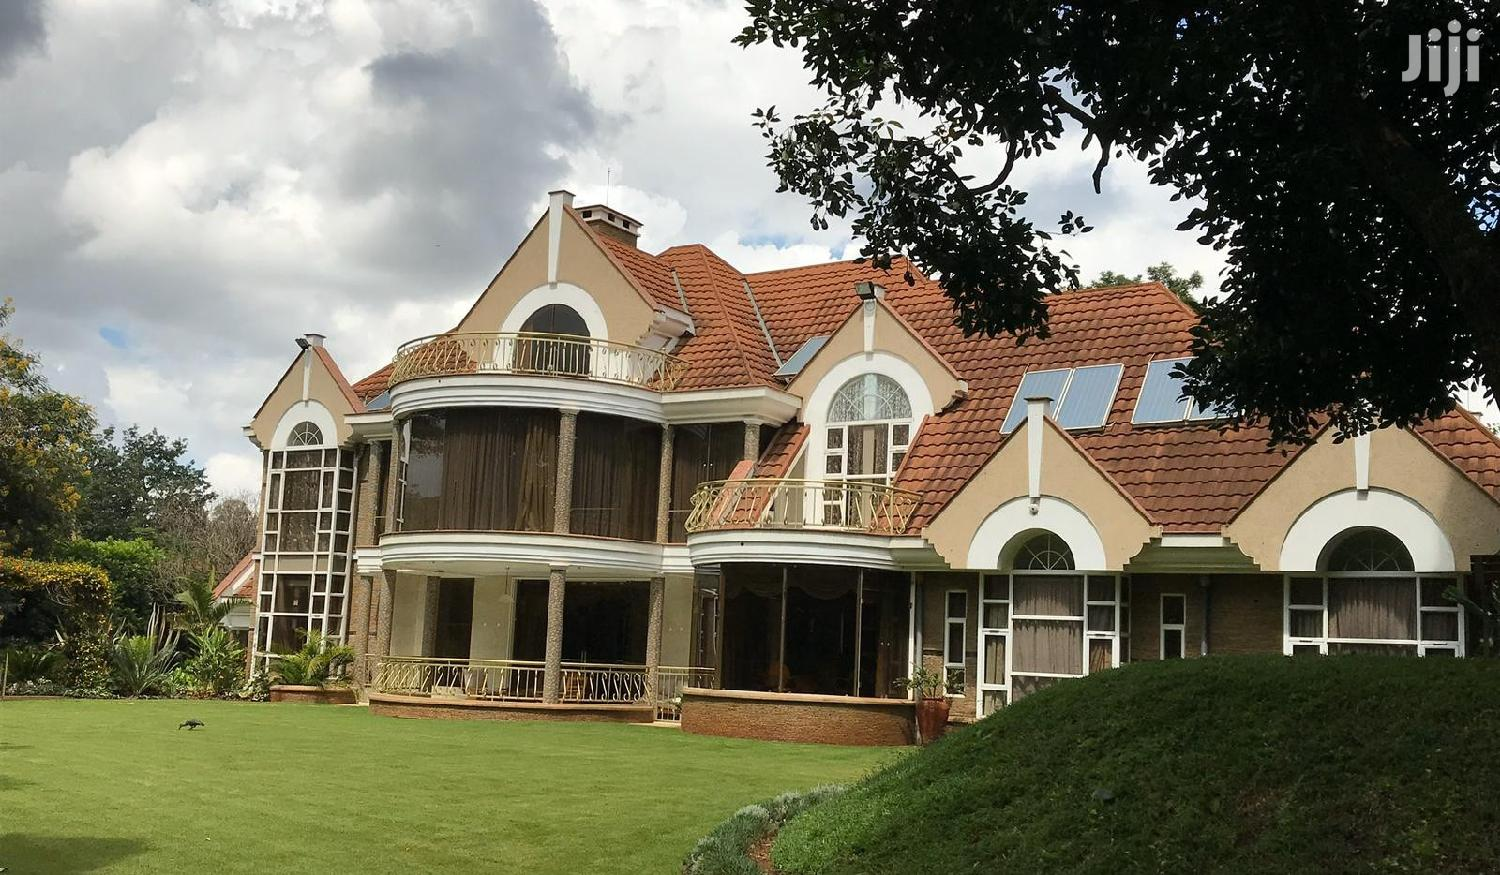 A 5bedroom House Sitting On 2acres At New Muthaiga On Sale | Houses & Apartments For Sale for sale in Nairobi Central, Nairobi, Kenya